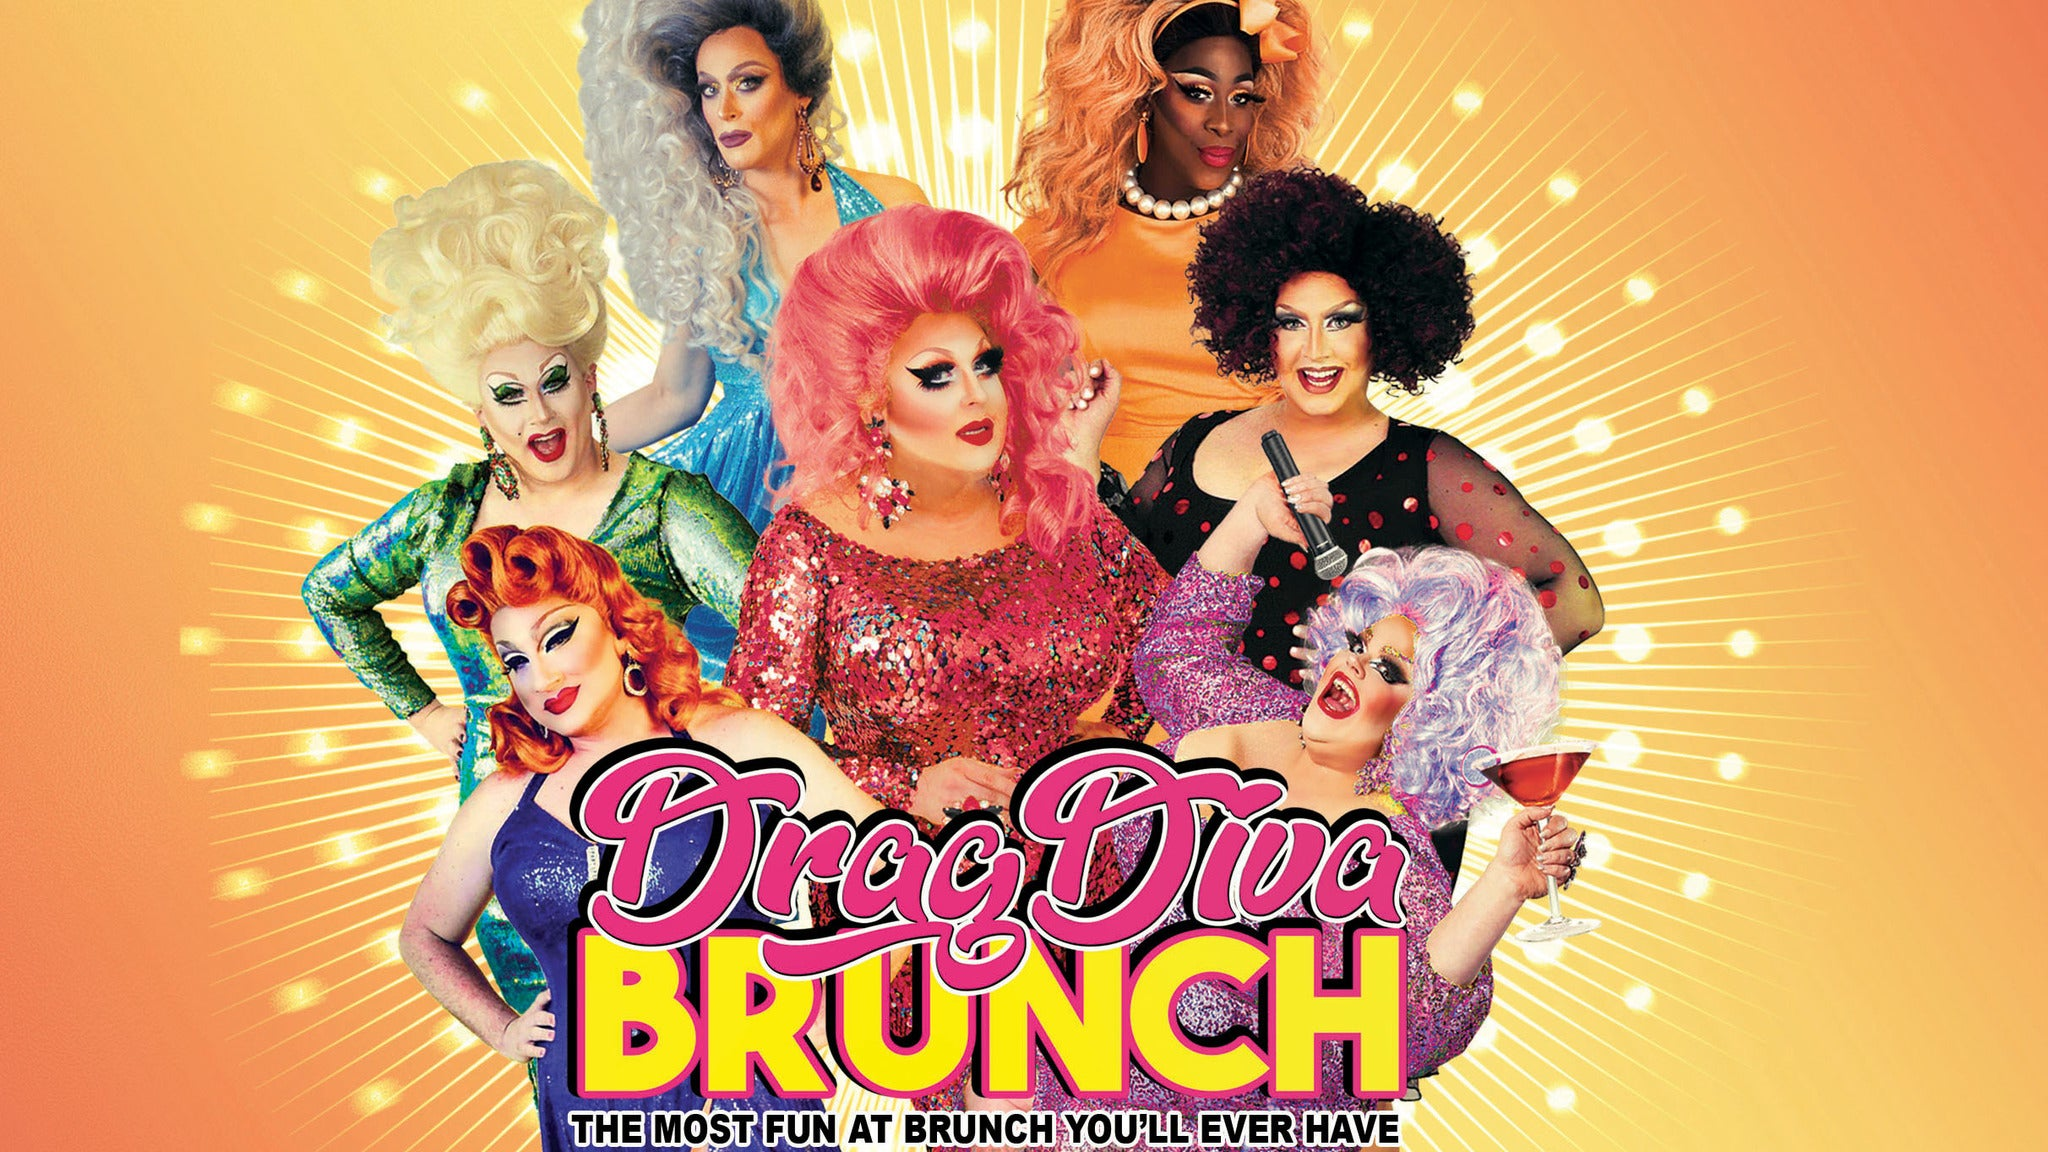 Drag Diva Brunch